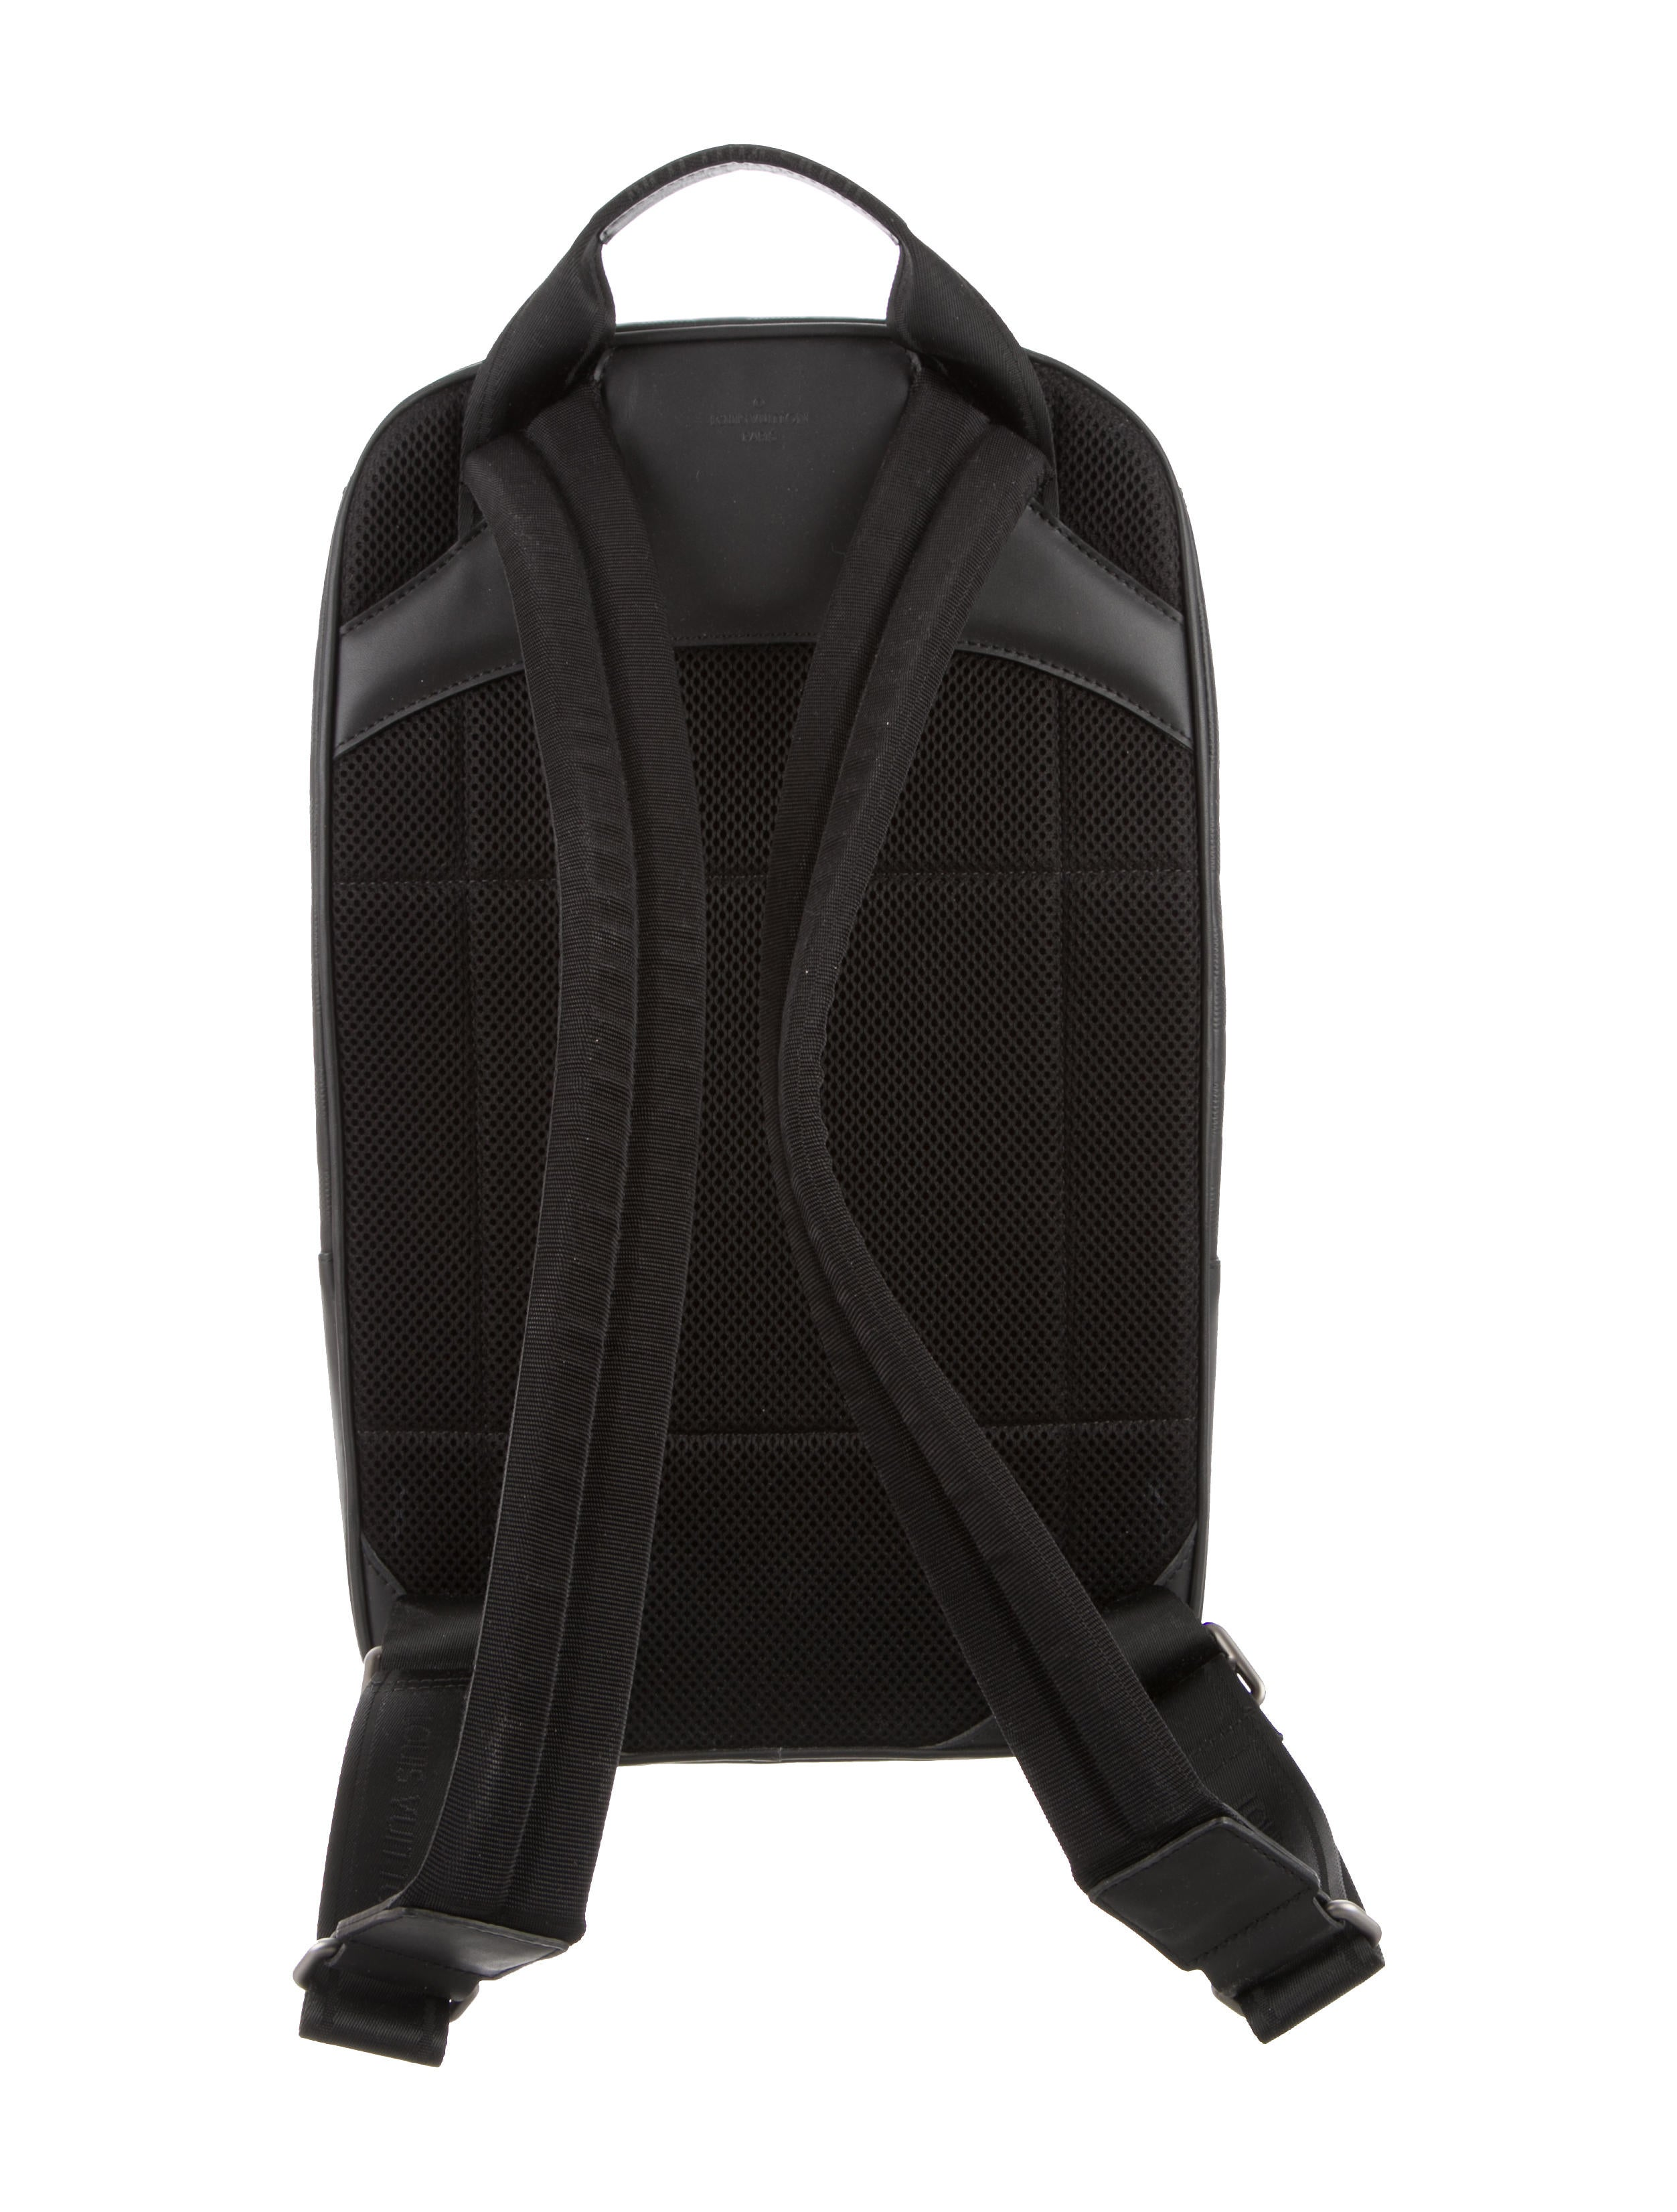 Louis Vuitton Damier Infini Michael Backpack Bags  : LOU1070244enlarged from www.therealreal.com size 2505 x 3305 jpeg 445kB